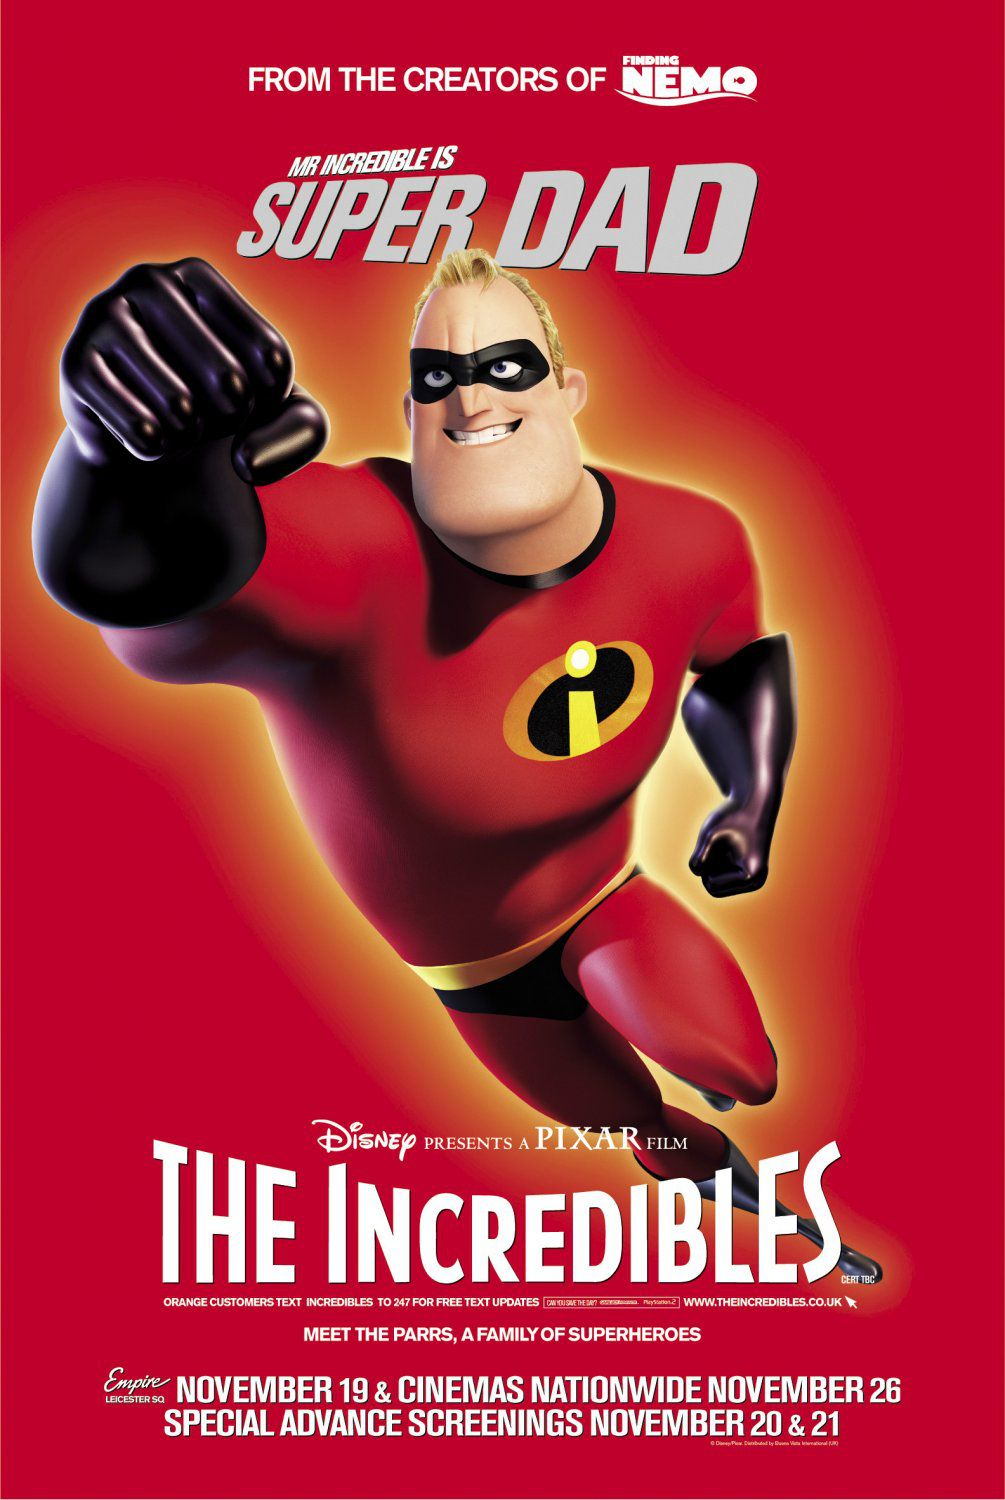 Mr. Incredible - super dad